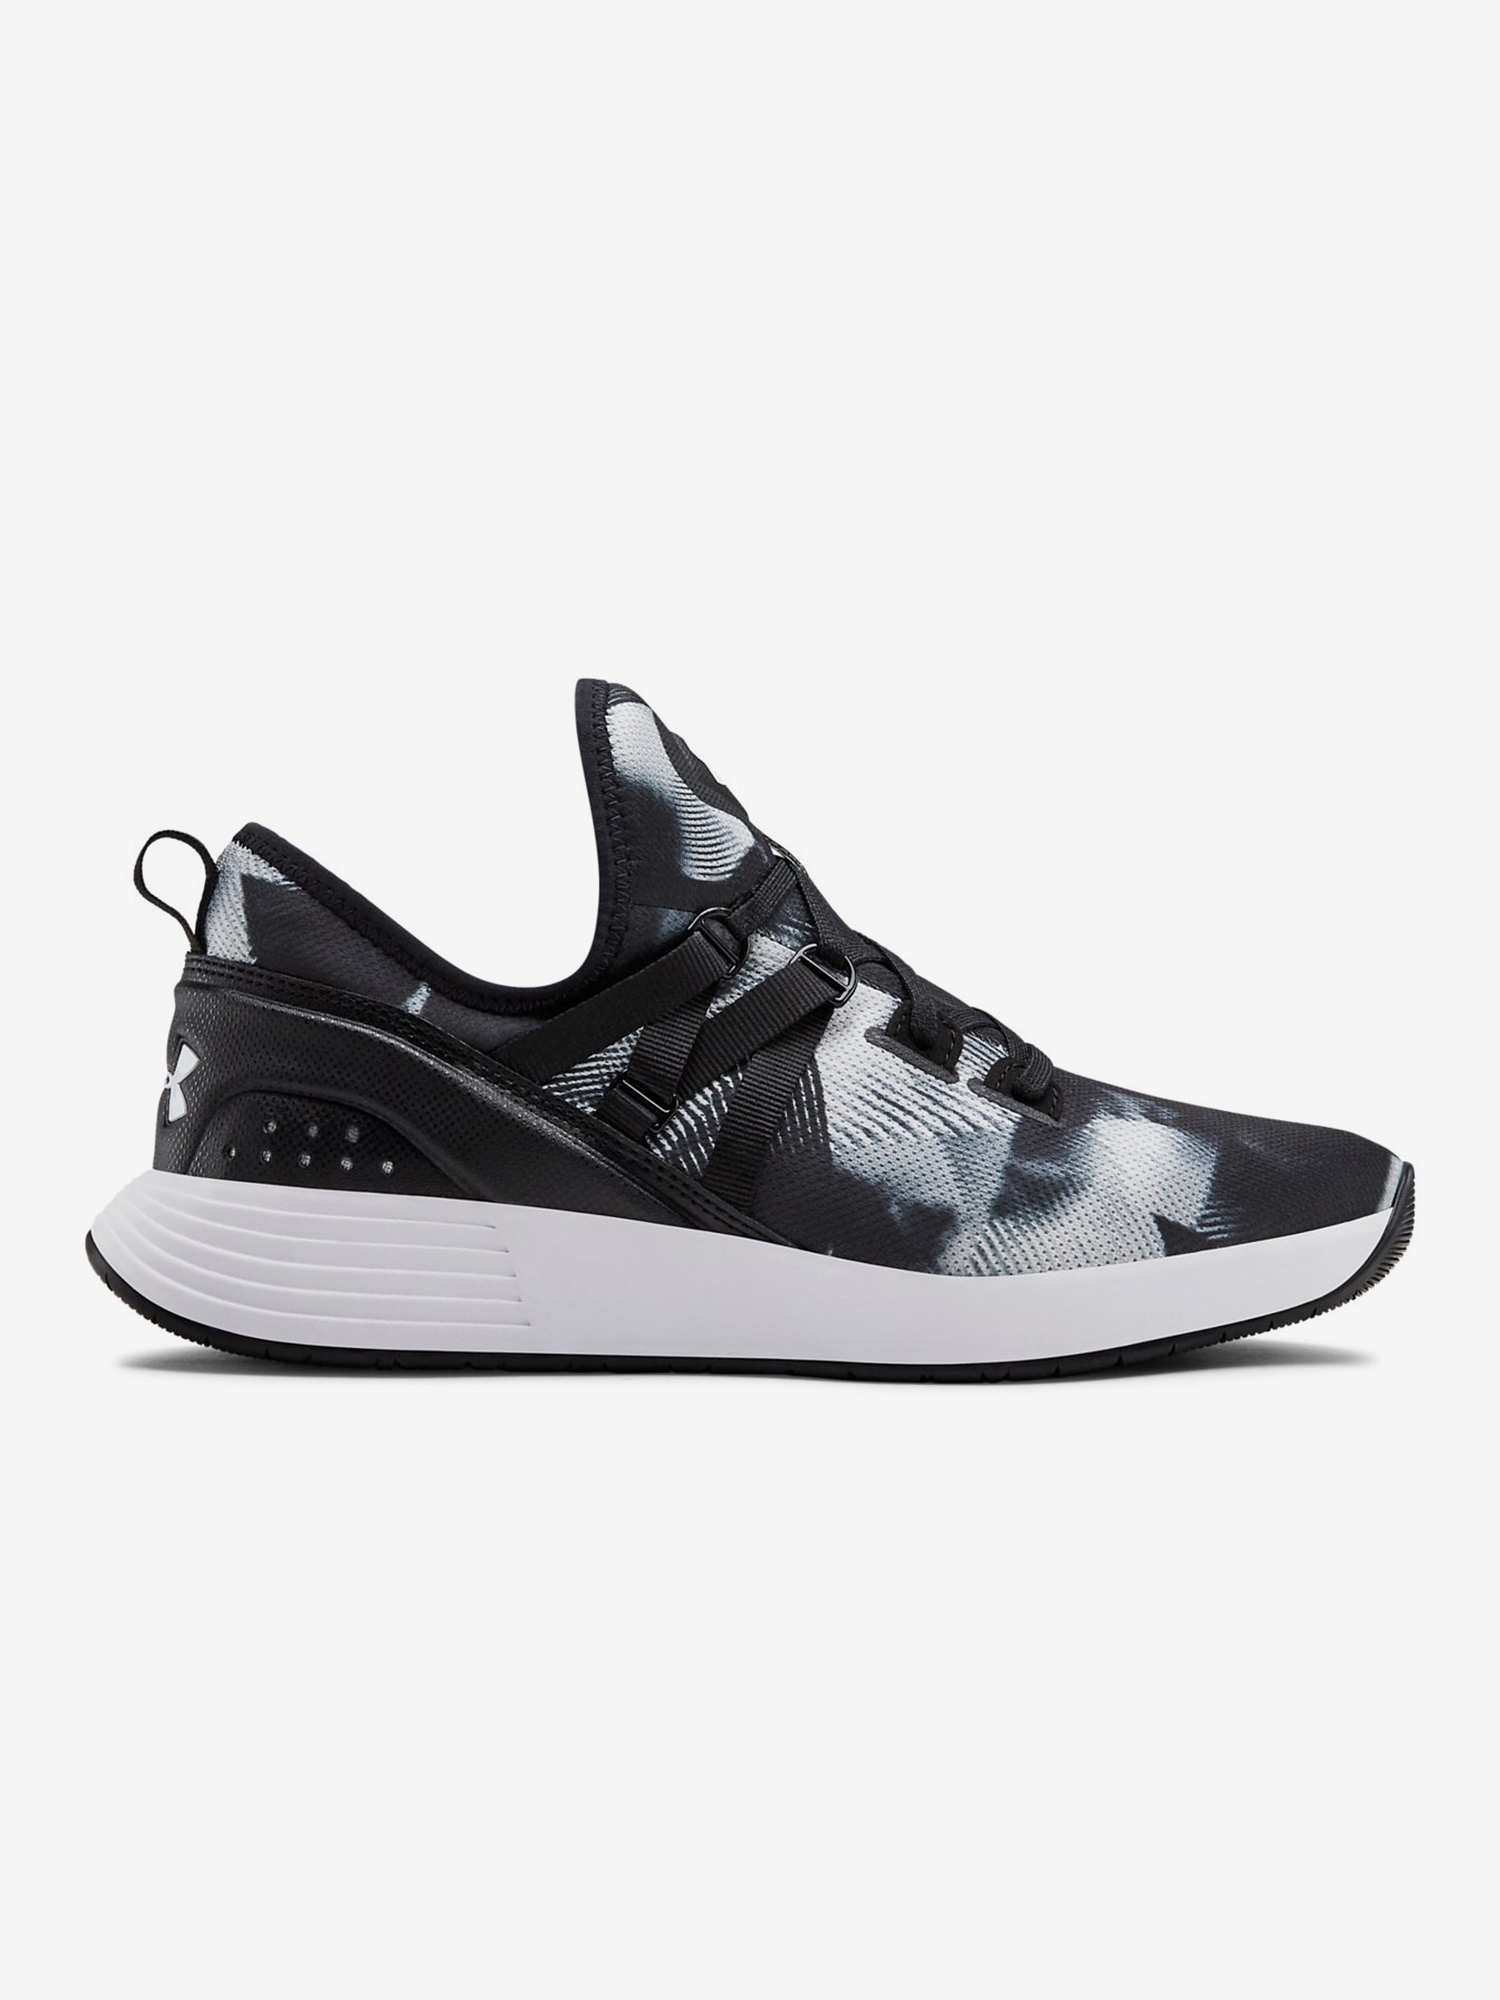 Boty Under Armour W Breathe Trainer Prnt-Blk (1)